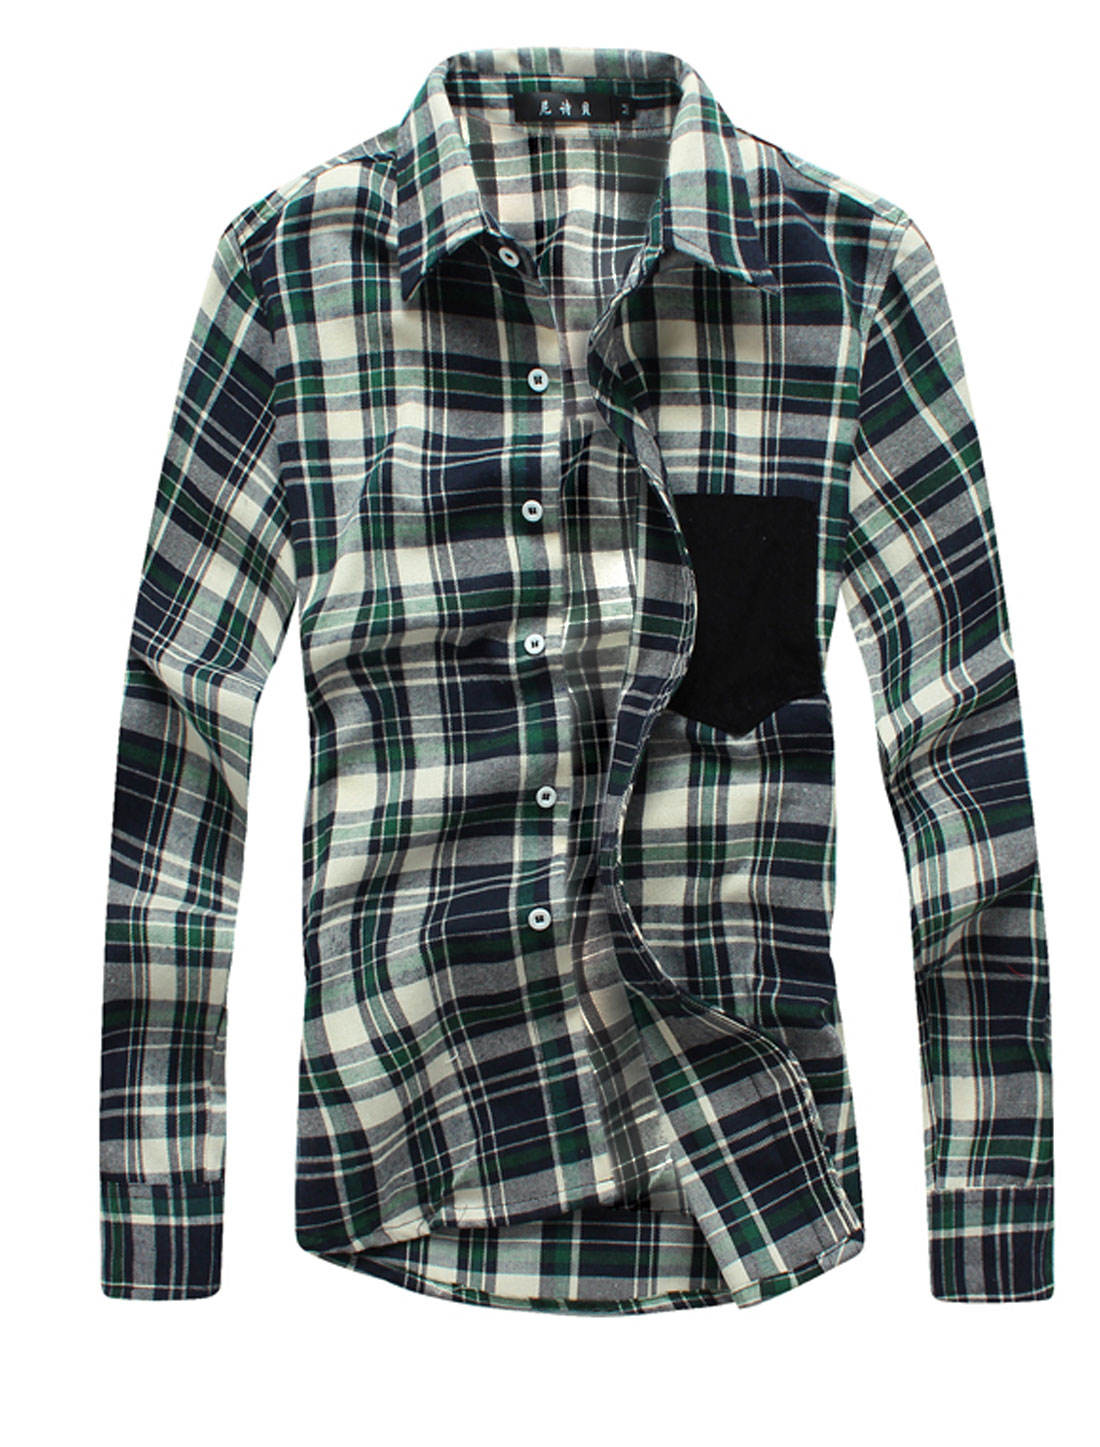 Men Long Sleeves Plaids Button Up Slim Fit Green Beige Casual Shirts M